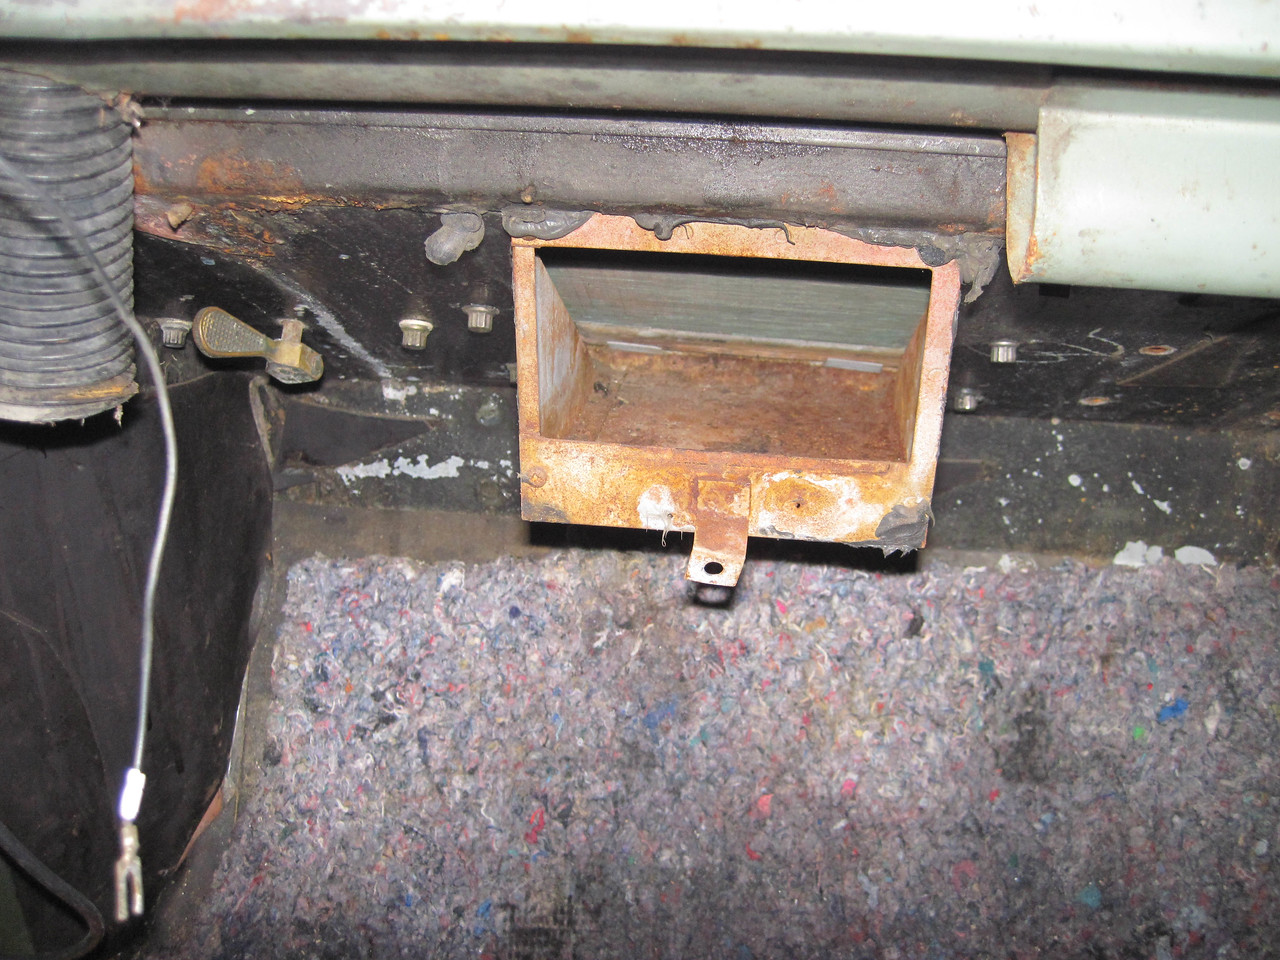 Inside view of heater coil.